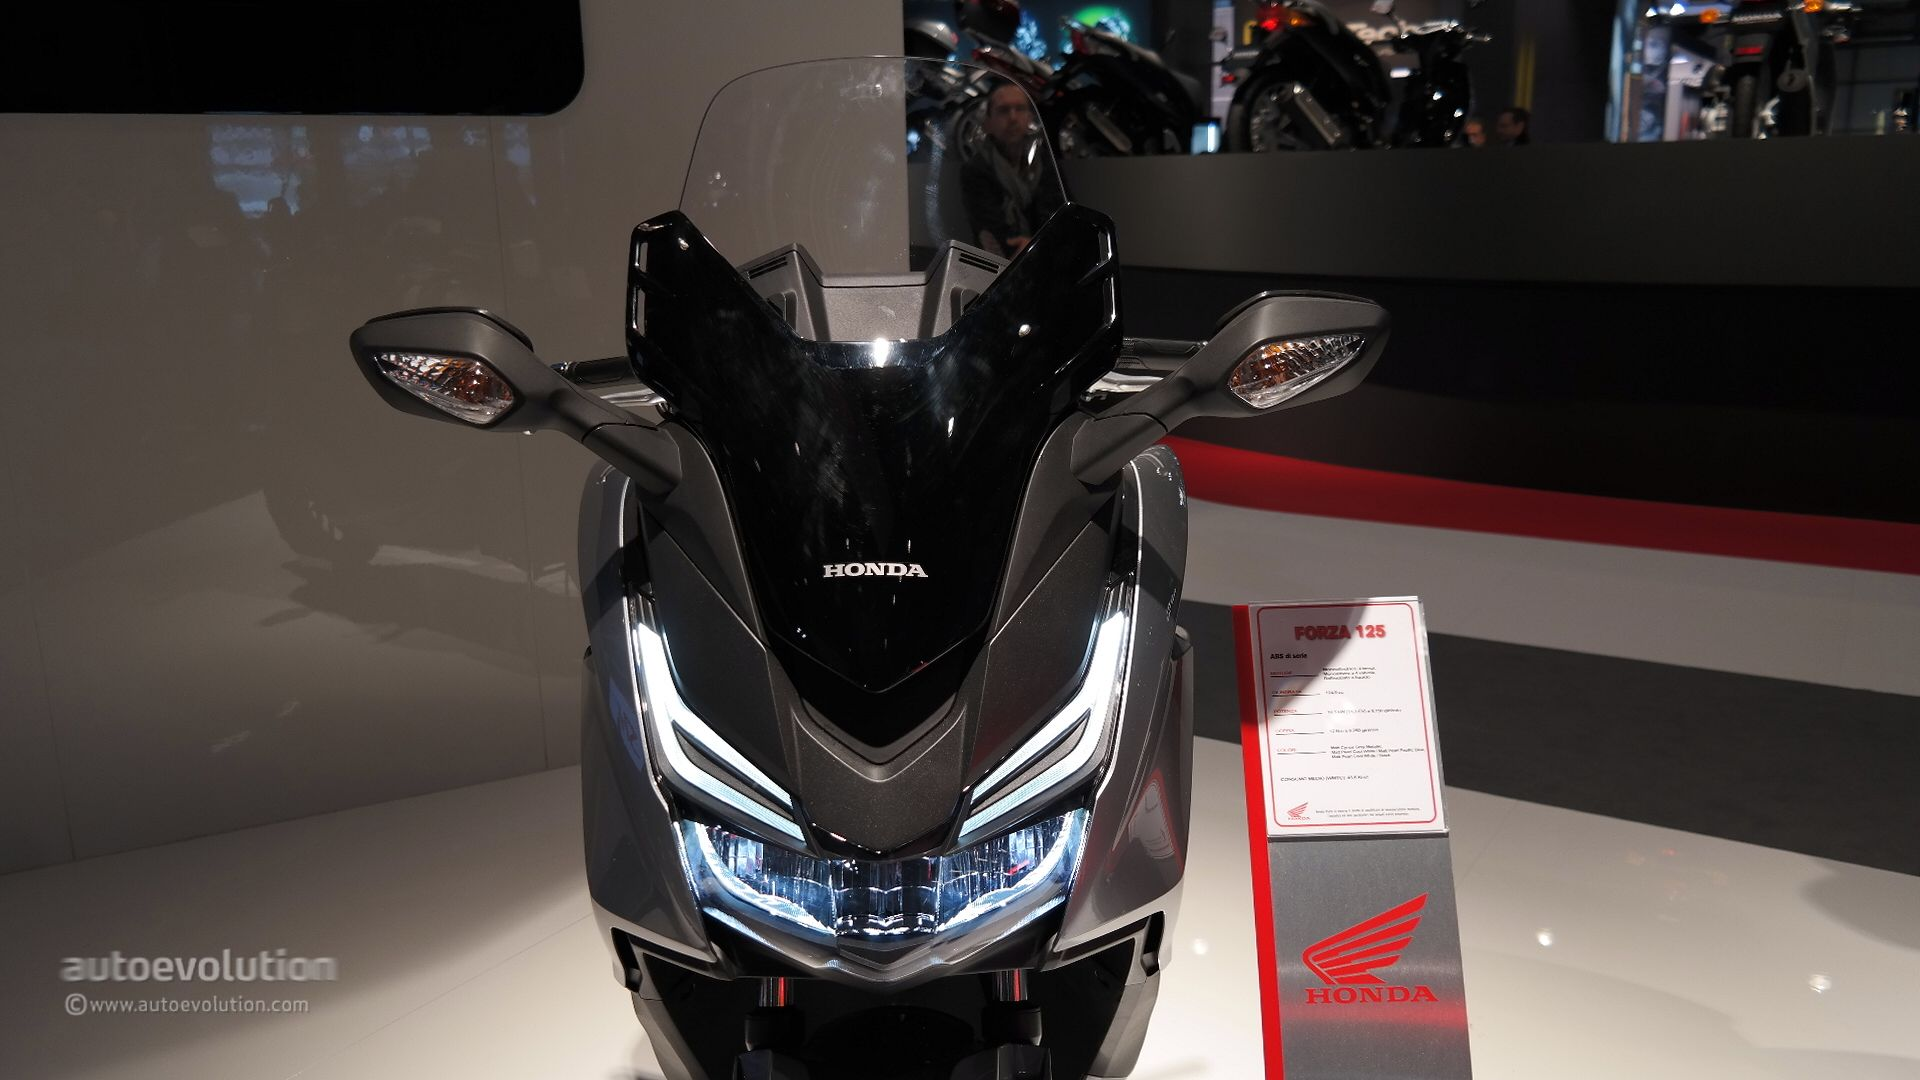 2015 Honda Forza 125 Shows Fresh LED Lights at EICMA 2014 [Live Photos] - autoevolution